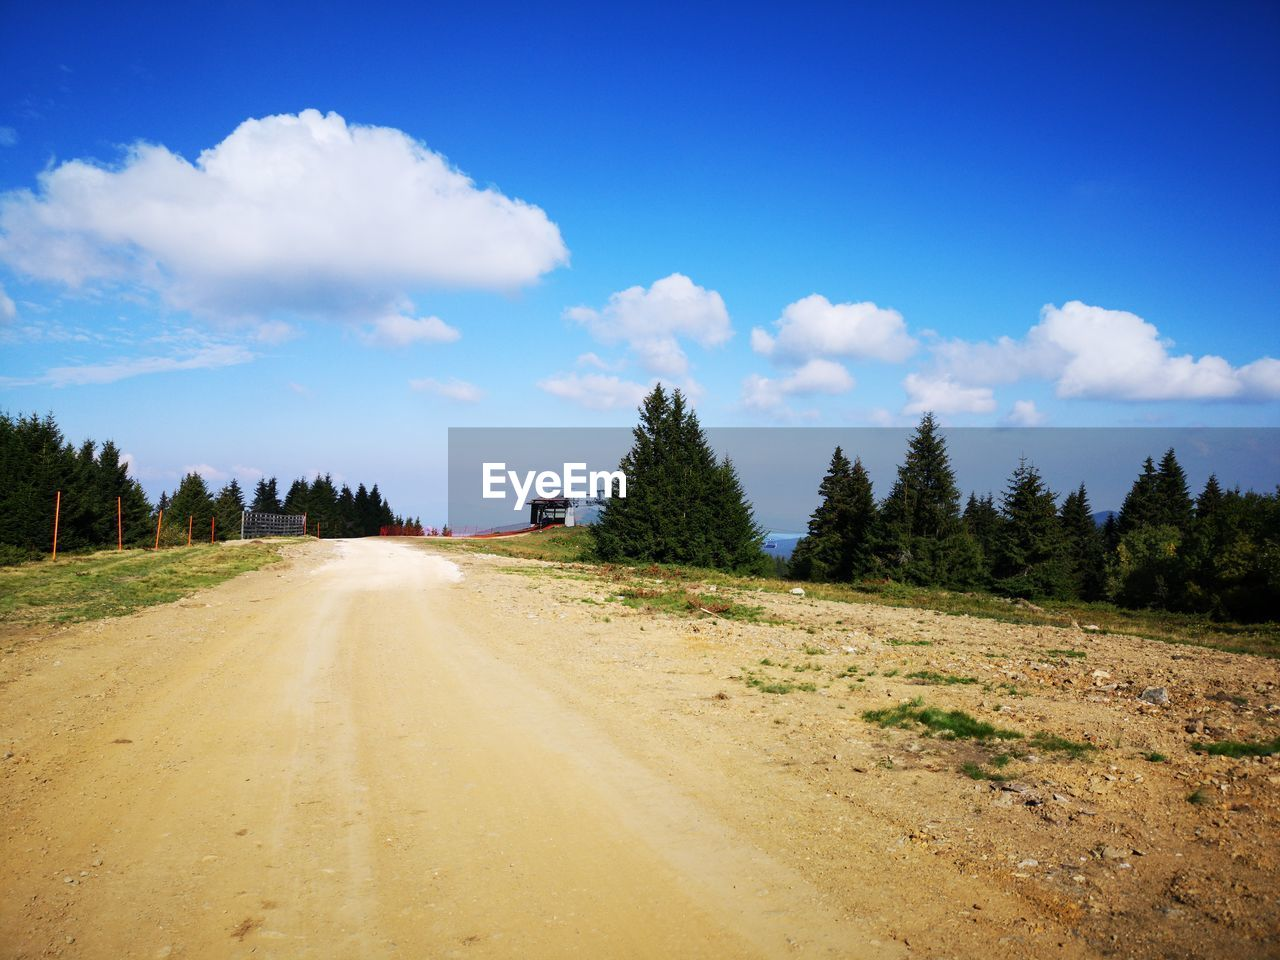 sky, tree, cloud - sky, road, plant, transportation, landscape, the way forward, nature, environment, direction, dirt road, land, scenics - nature, beauty in nature, non-urban scene, tranquility, tranquil scene, day, no people, diminishing perspective, outdoors, long